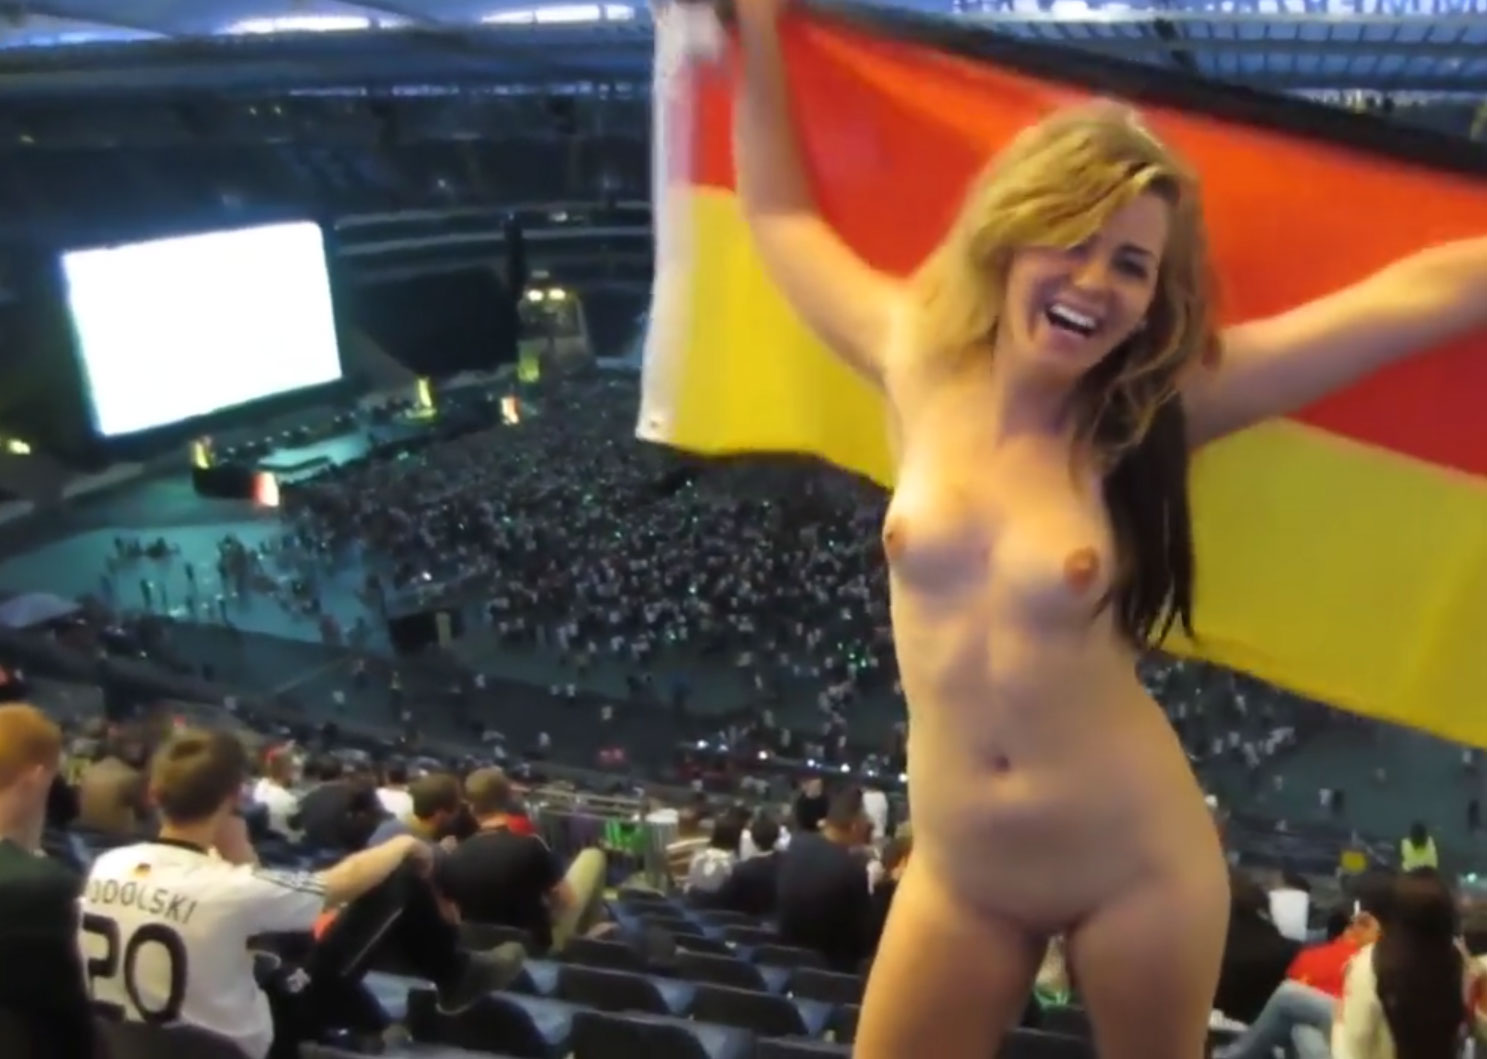 Blonde Flashing - Totally naked at a Stadium